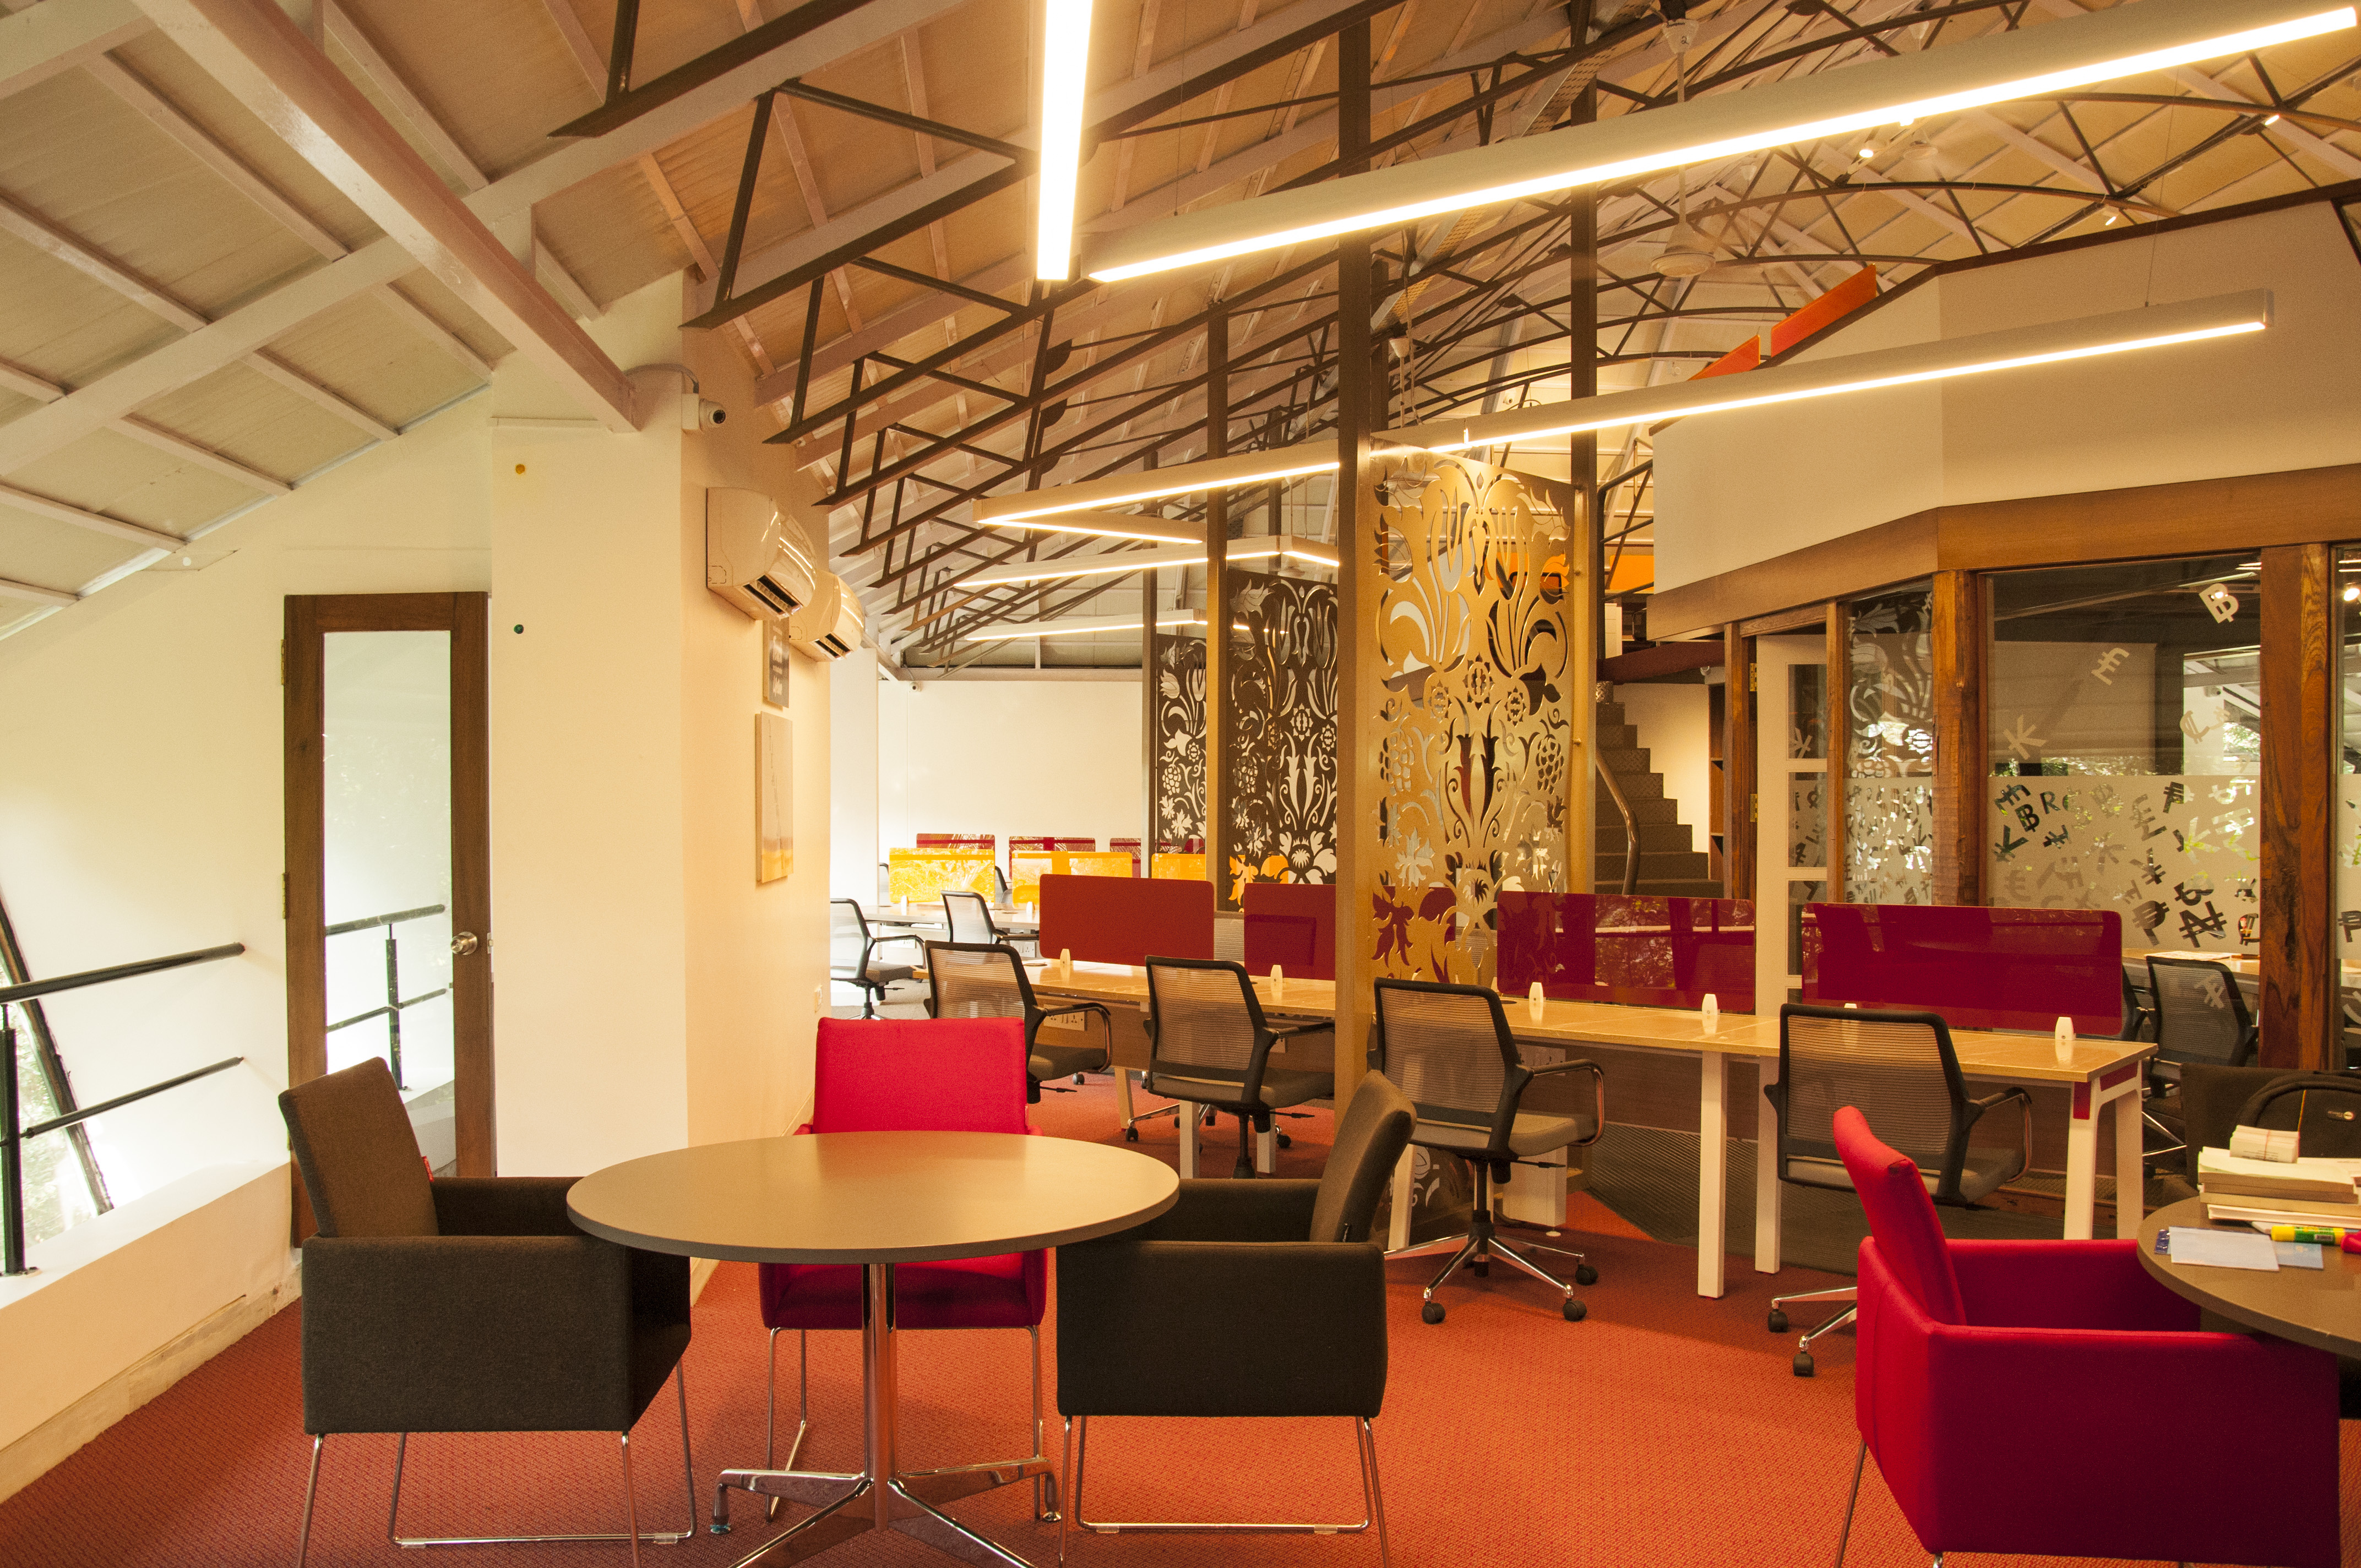 Coworking space at Evoma, whitefield